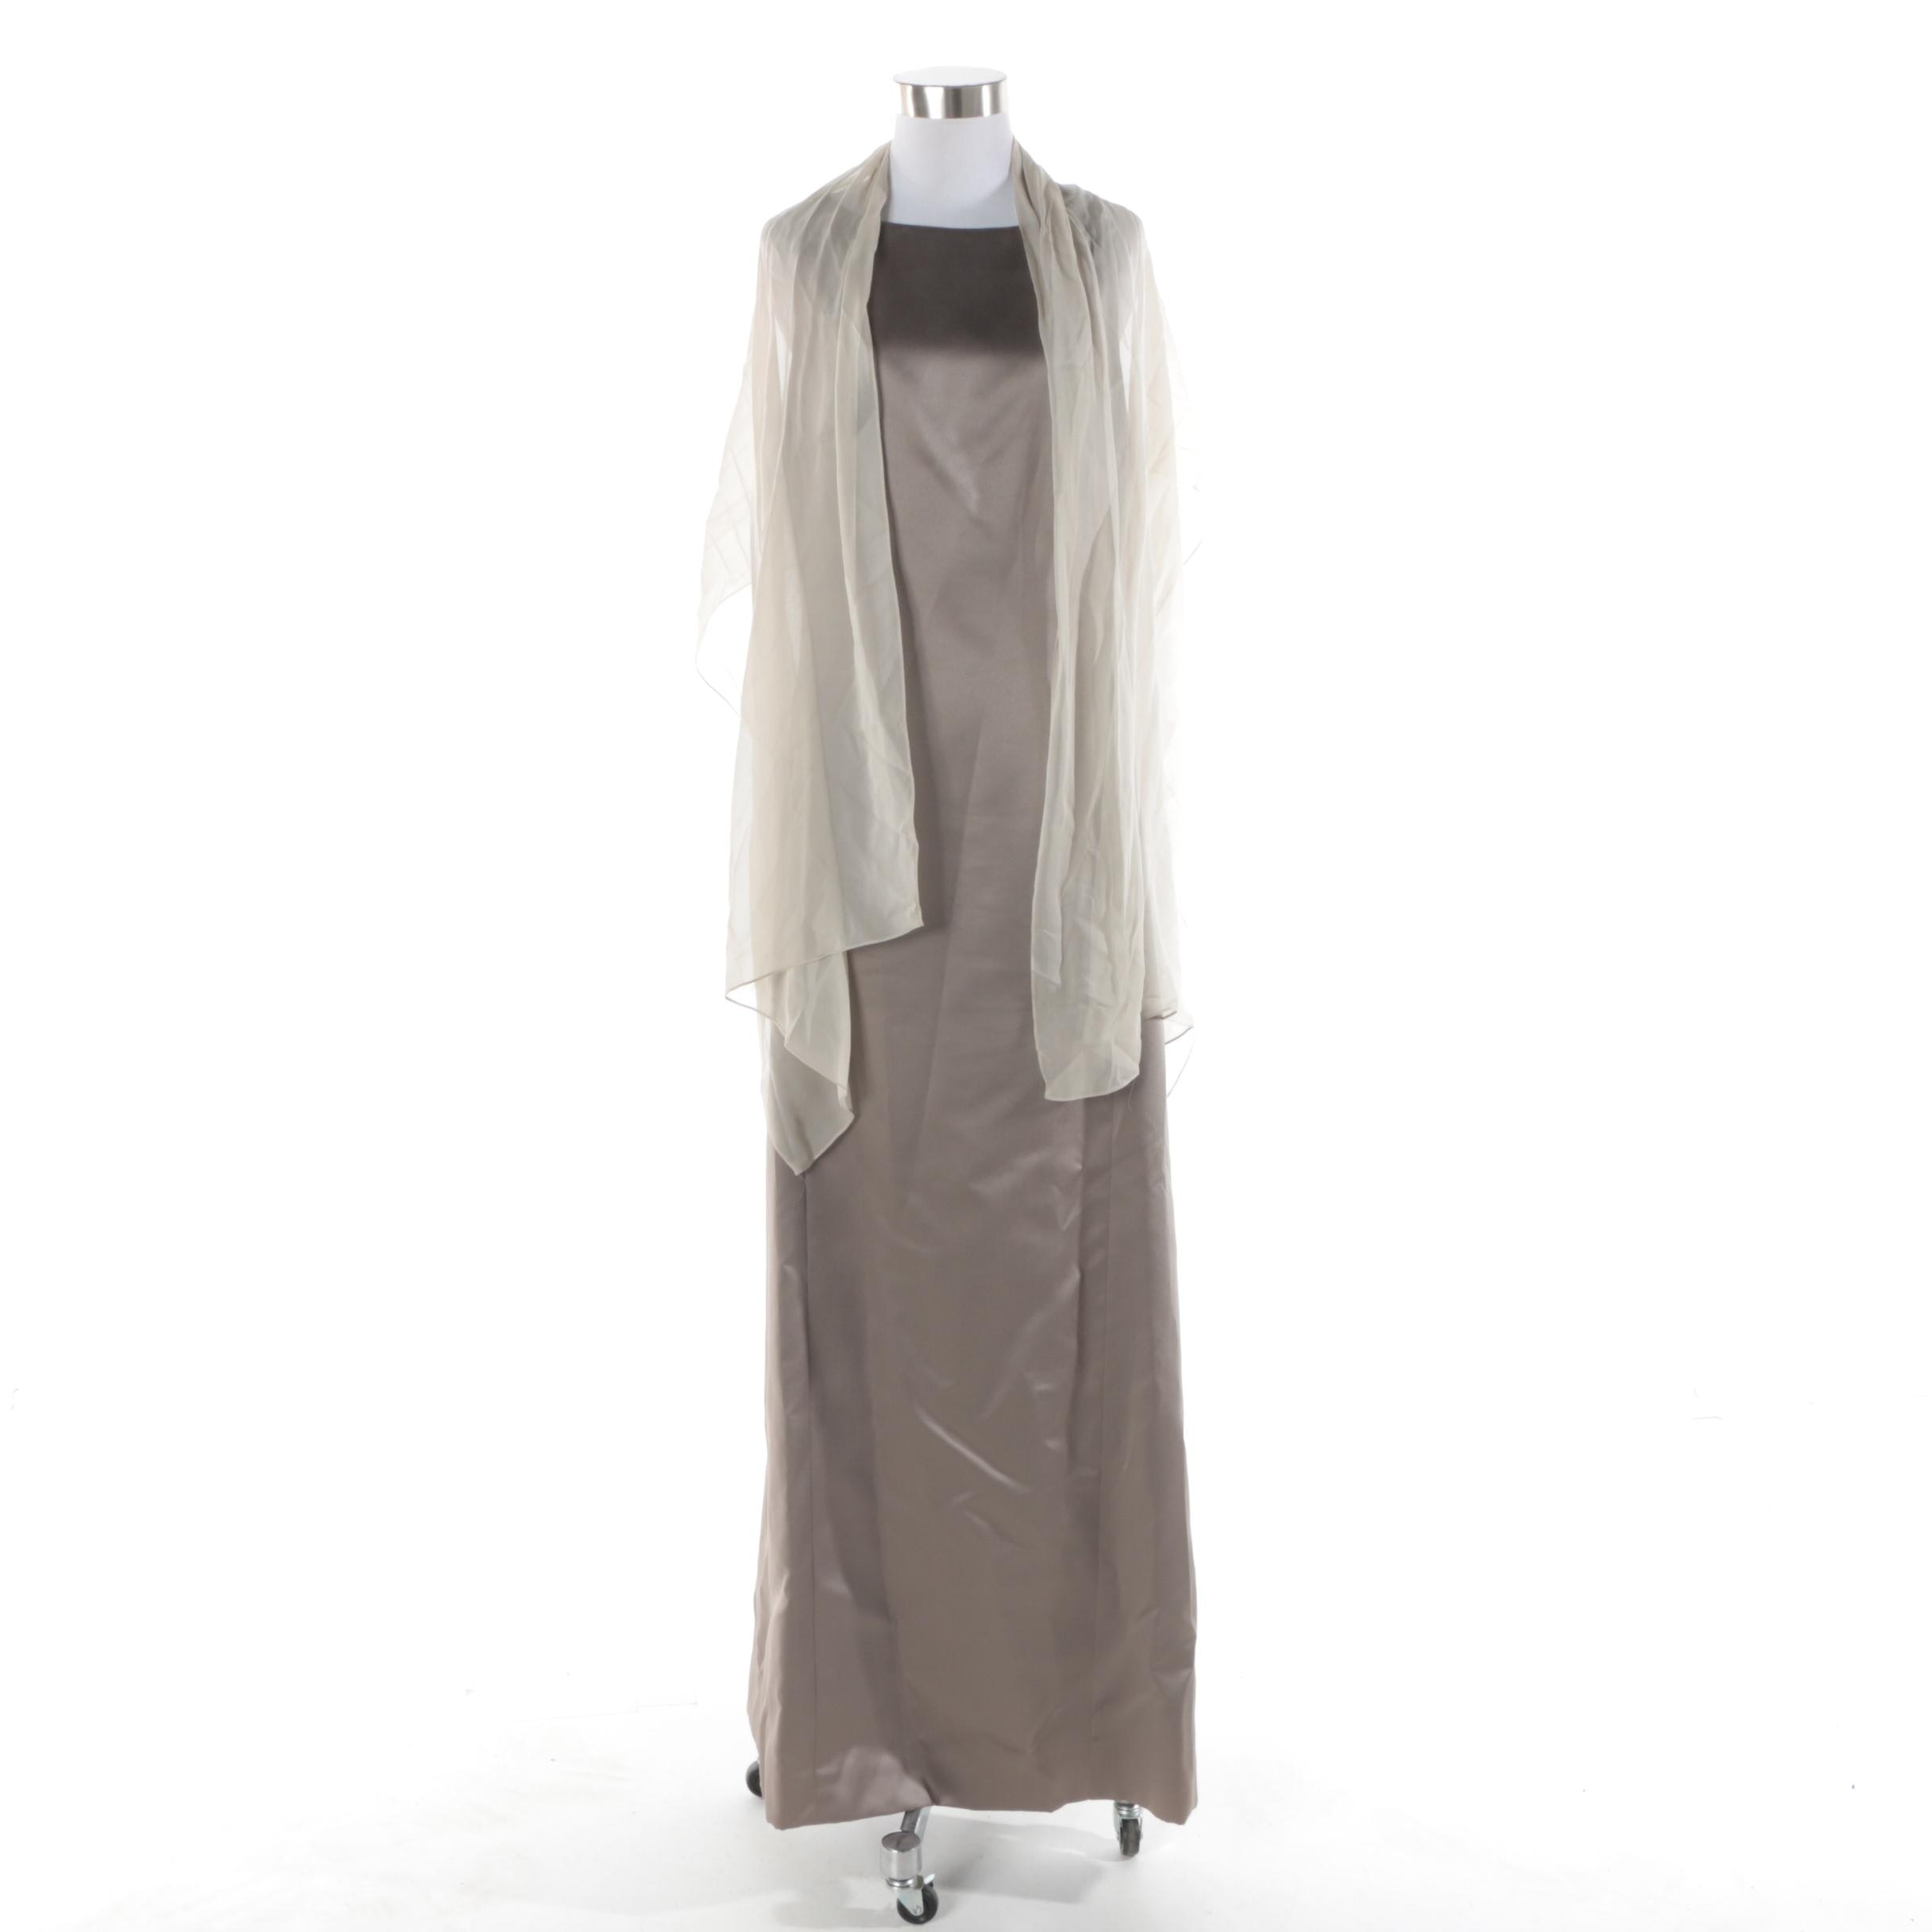 Vera Wang Grey Sleeveless Gown with Sheer Shawl